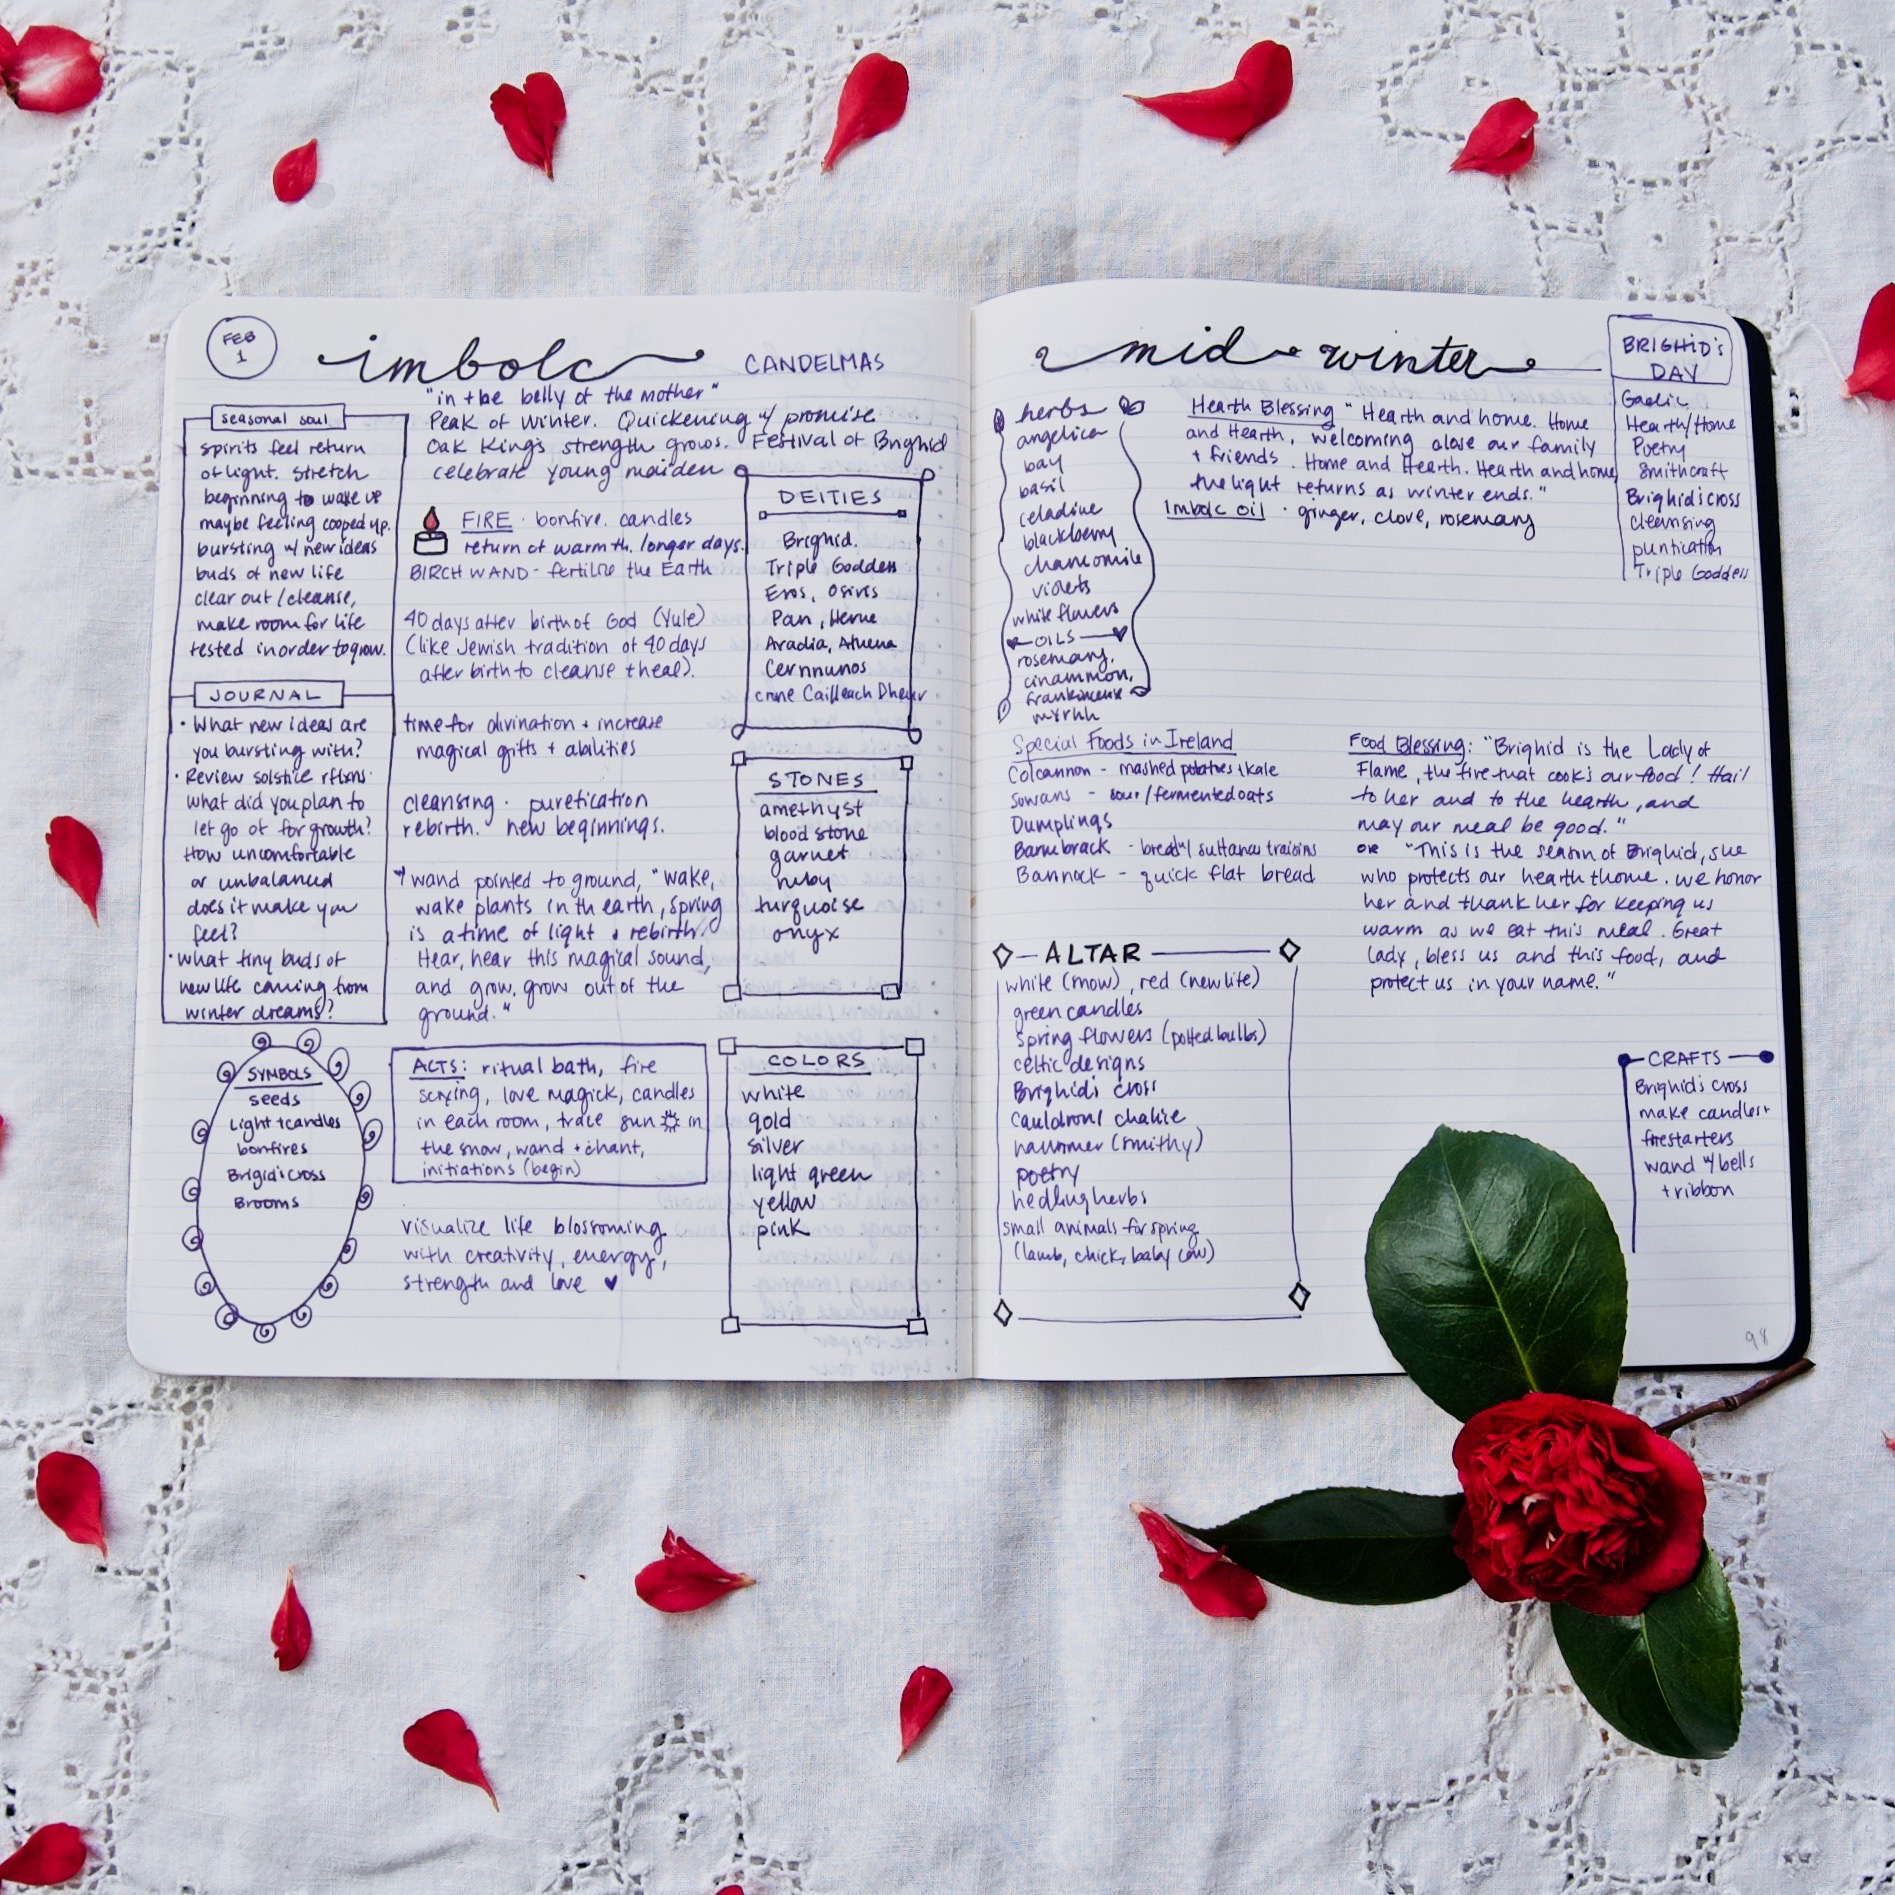 imbolc notes in grimoire